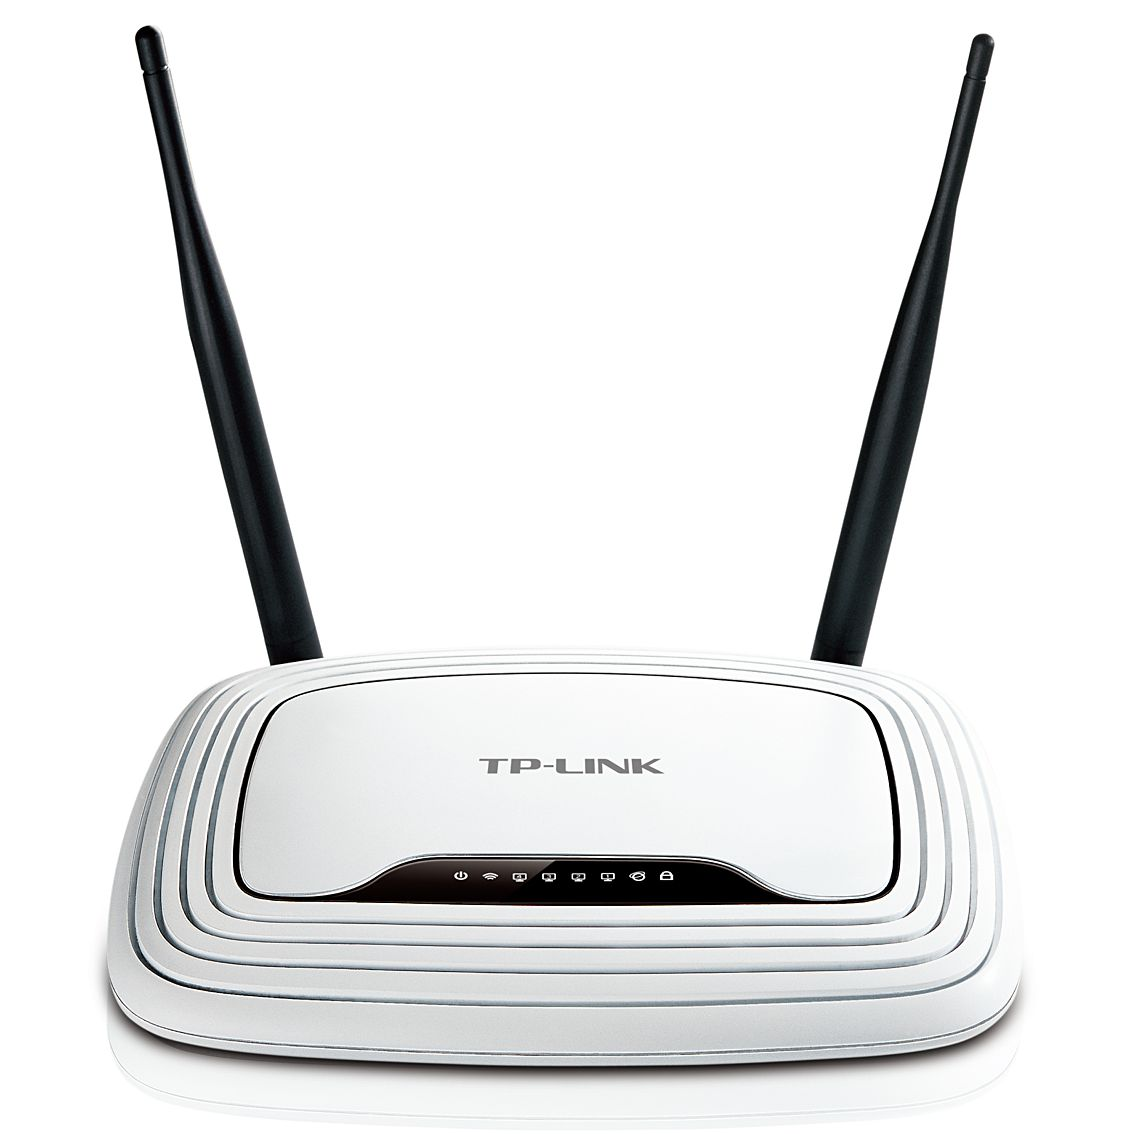 TP-LINK 300Mbps Wireless N Router, Ver. 13.0 - TP-LINK 8764